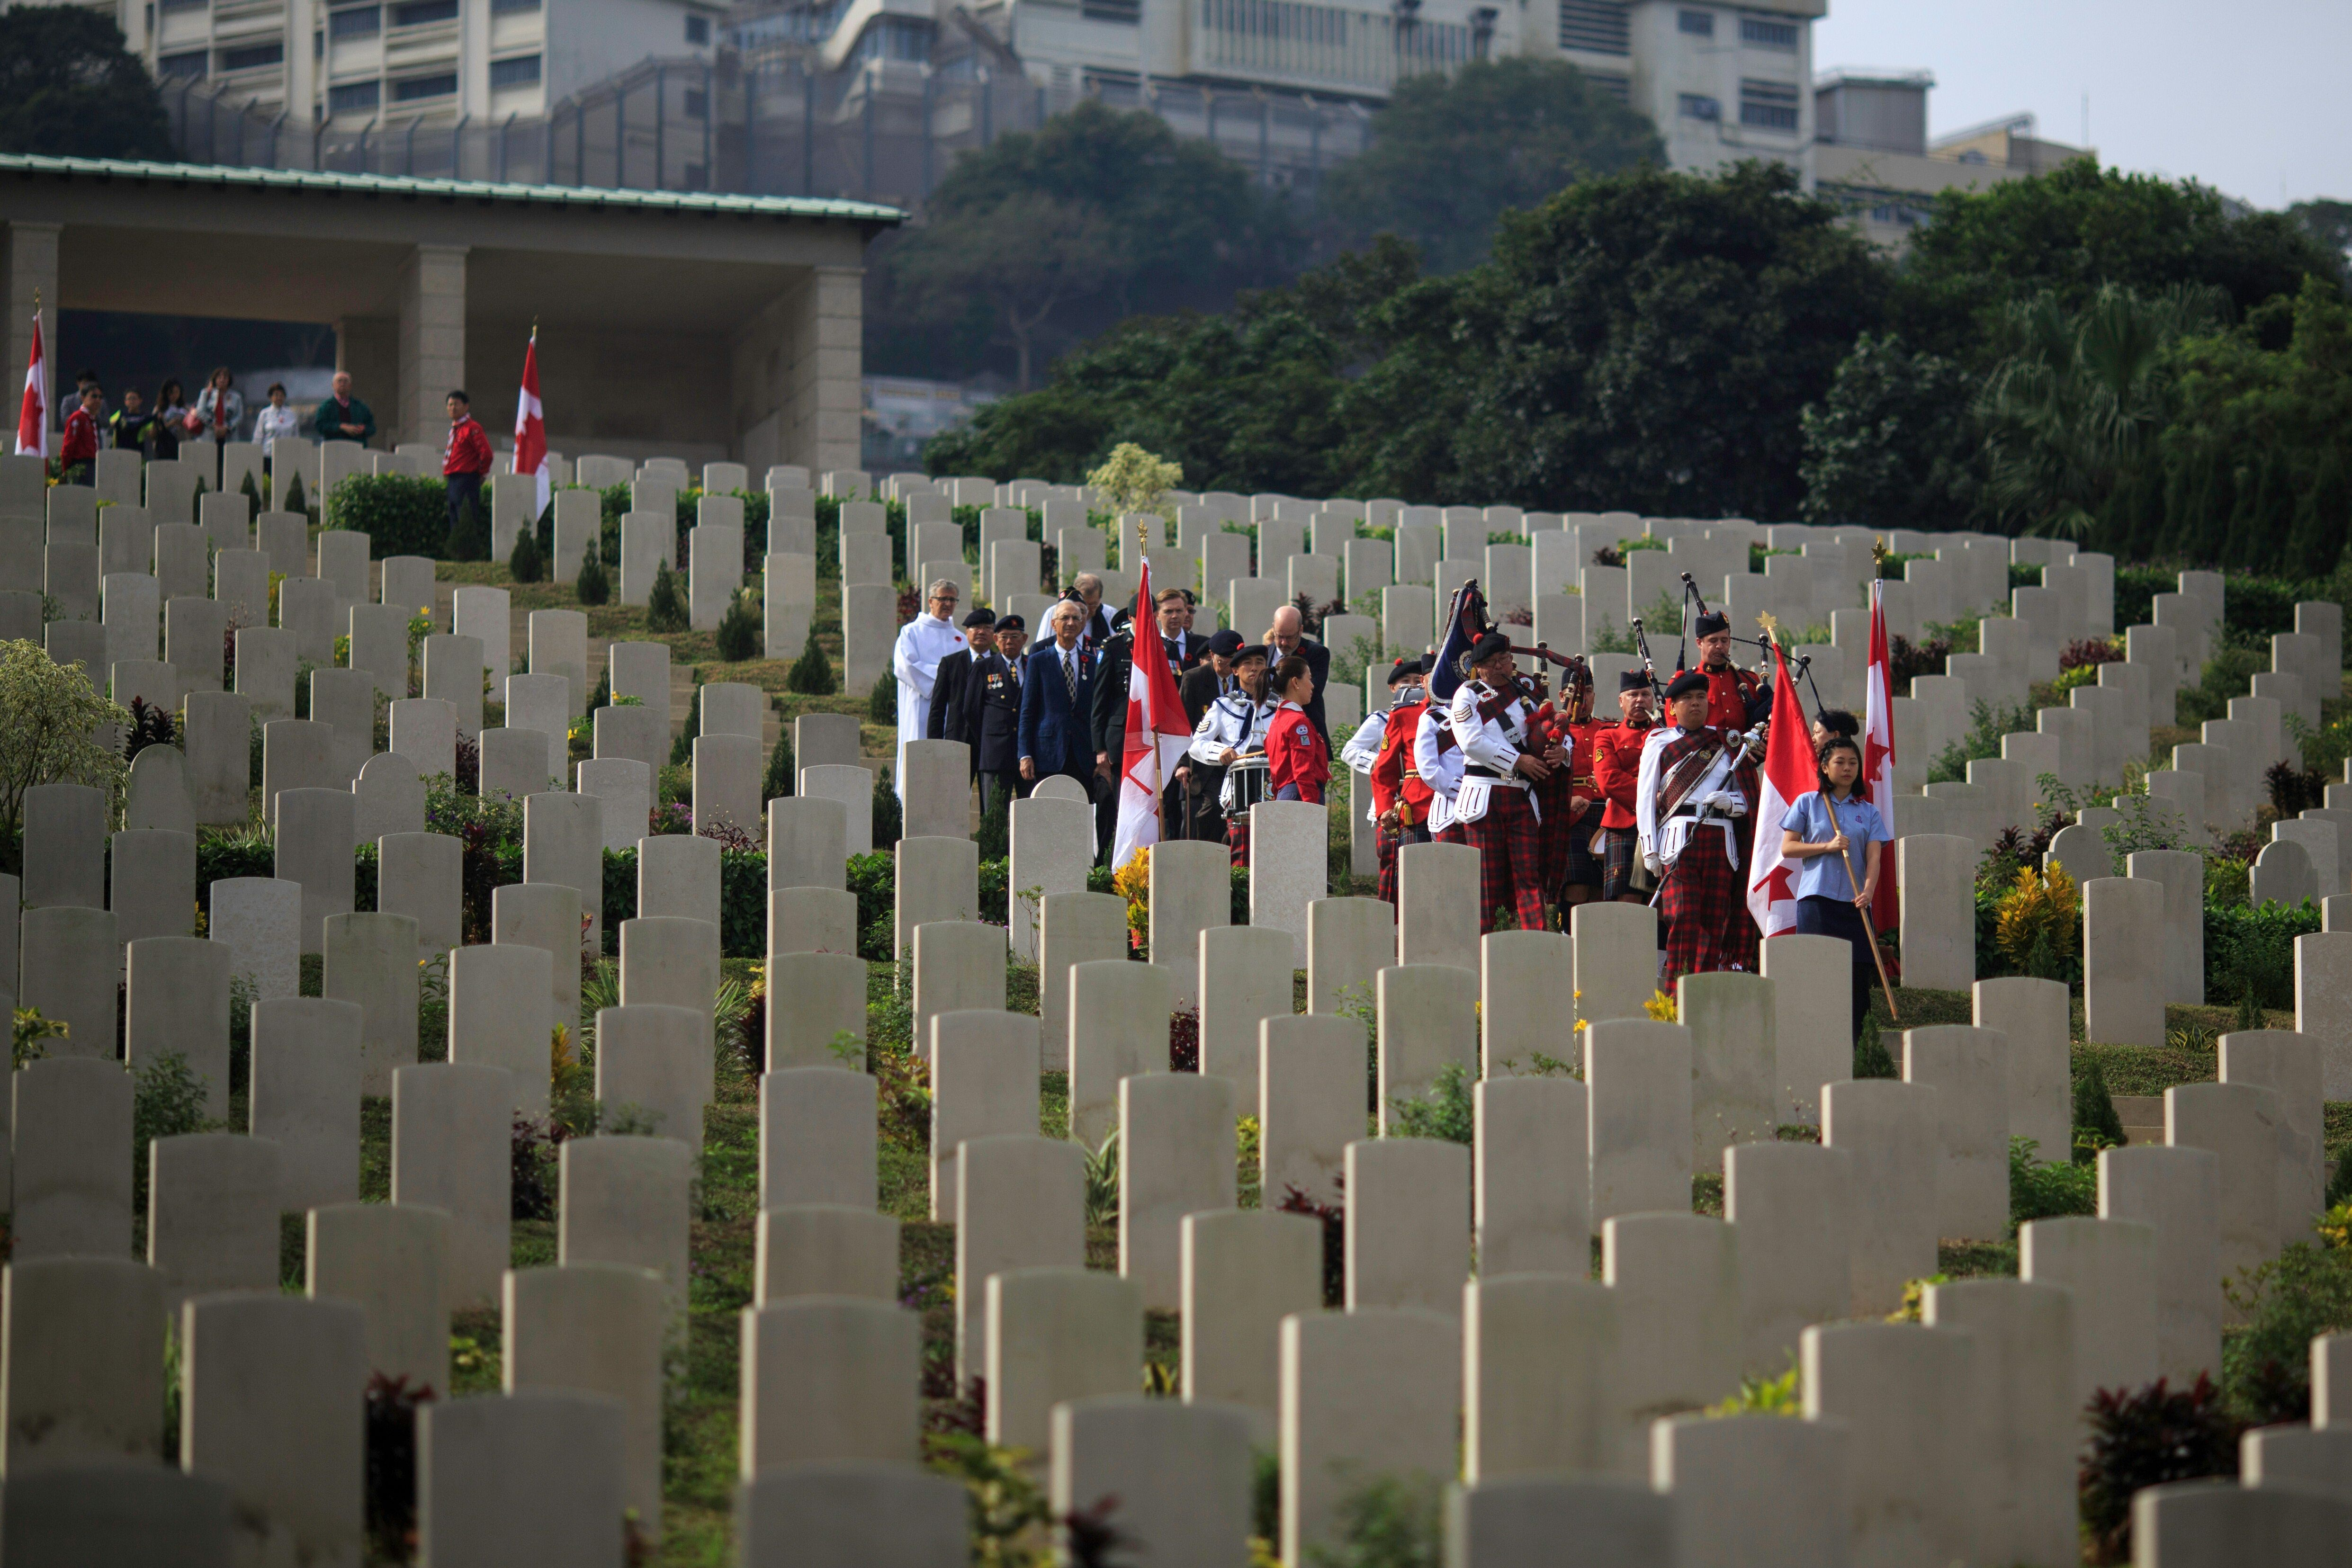 A pipes-and-drum band, comprising members of the Hong Kong Police and Royal Canadian Mounted Police, leads a procession past tombstones in Hong Kong's Sai Wan War Cemetery on Dec. 4, 2016, during the Canadian commemorative ceremony honoring those who died during the Battle of Hong Kong and World War II